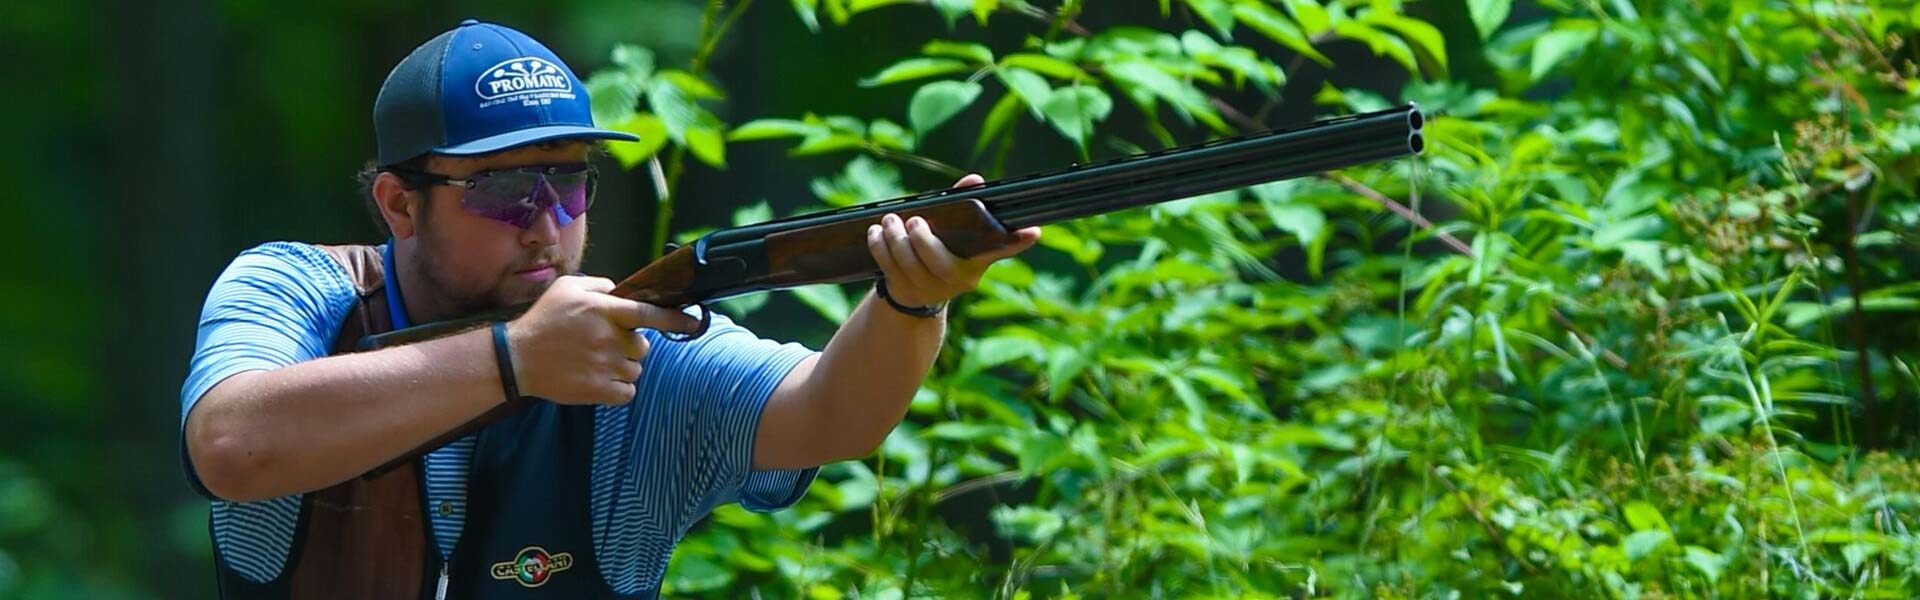 Sporting clays leagues for teens